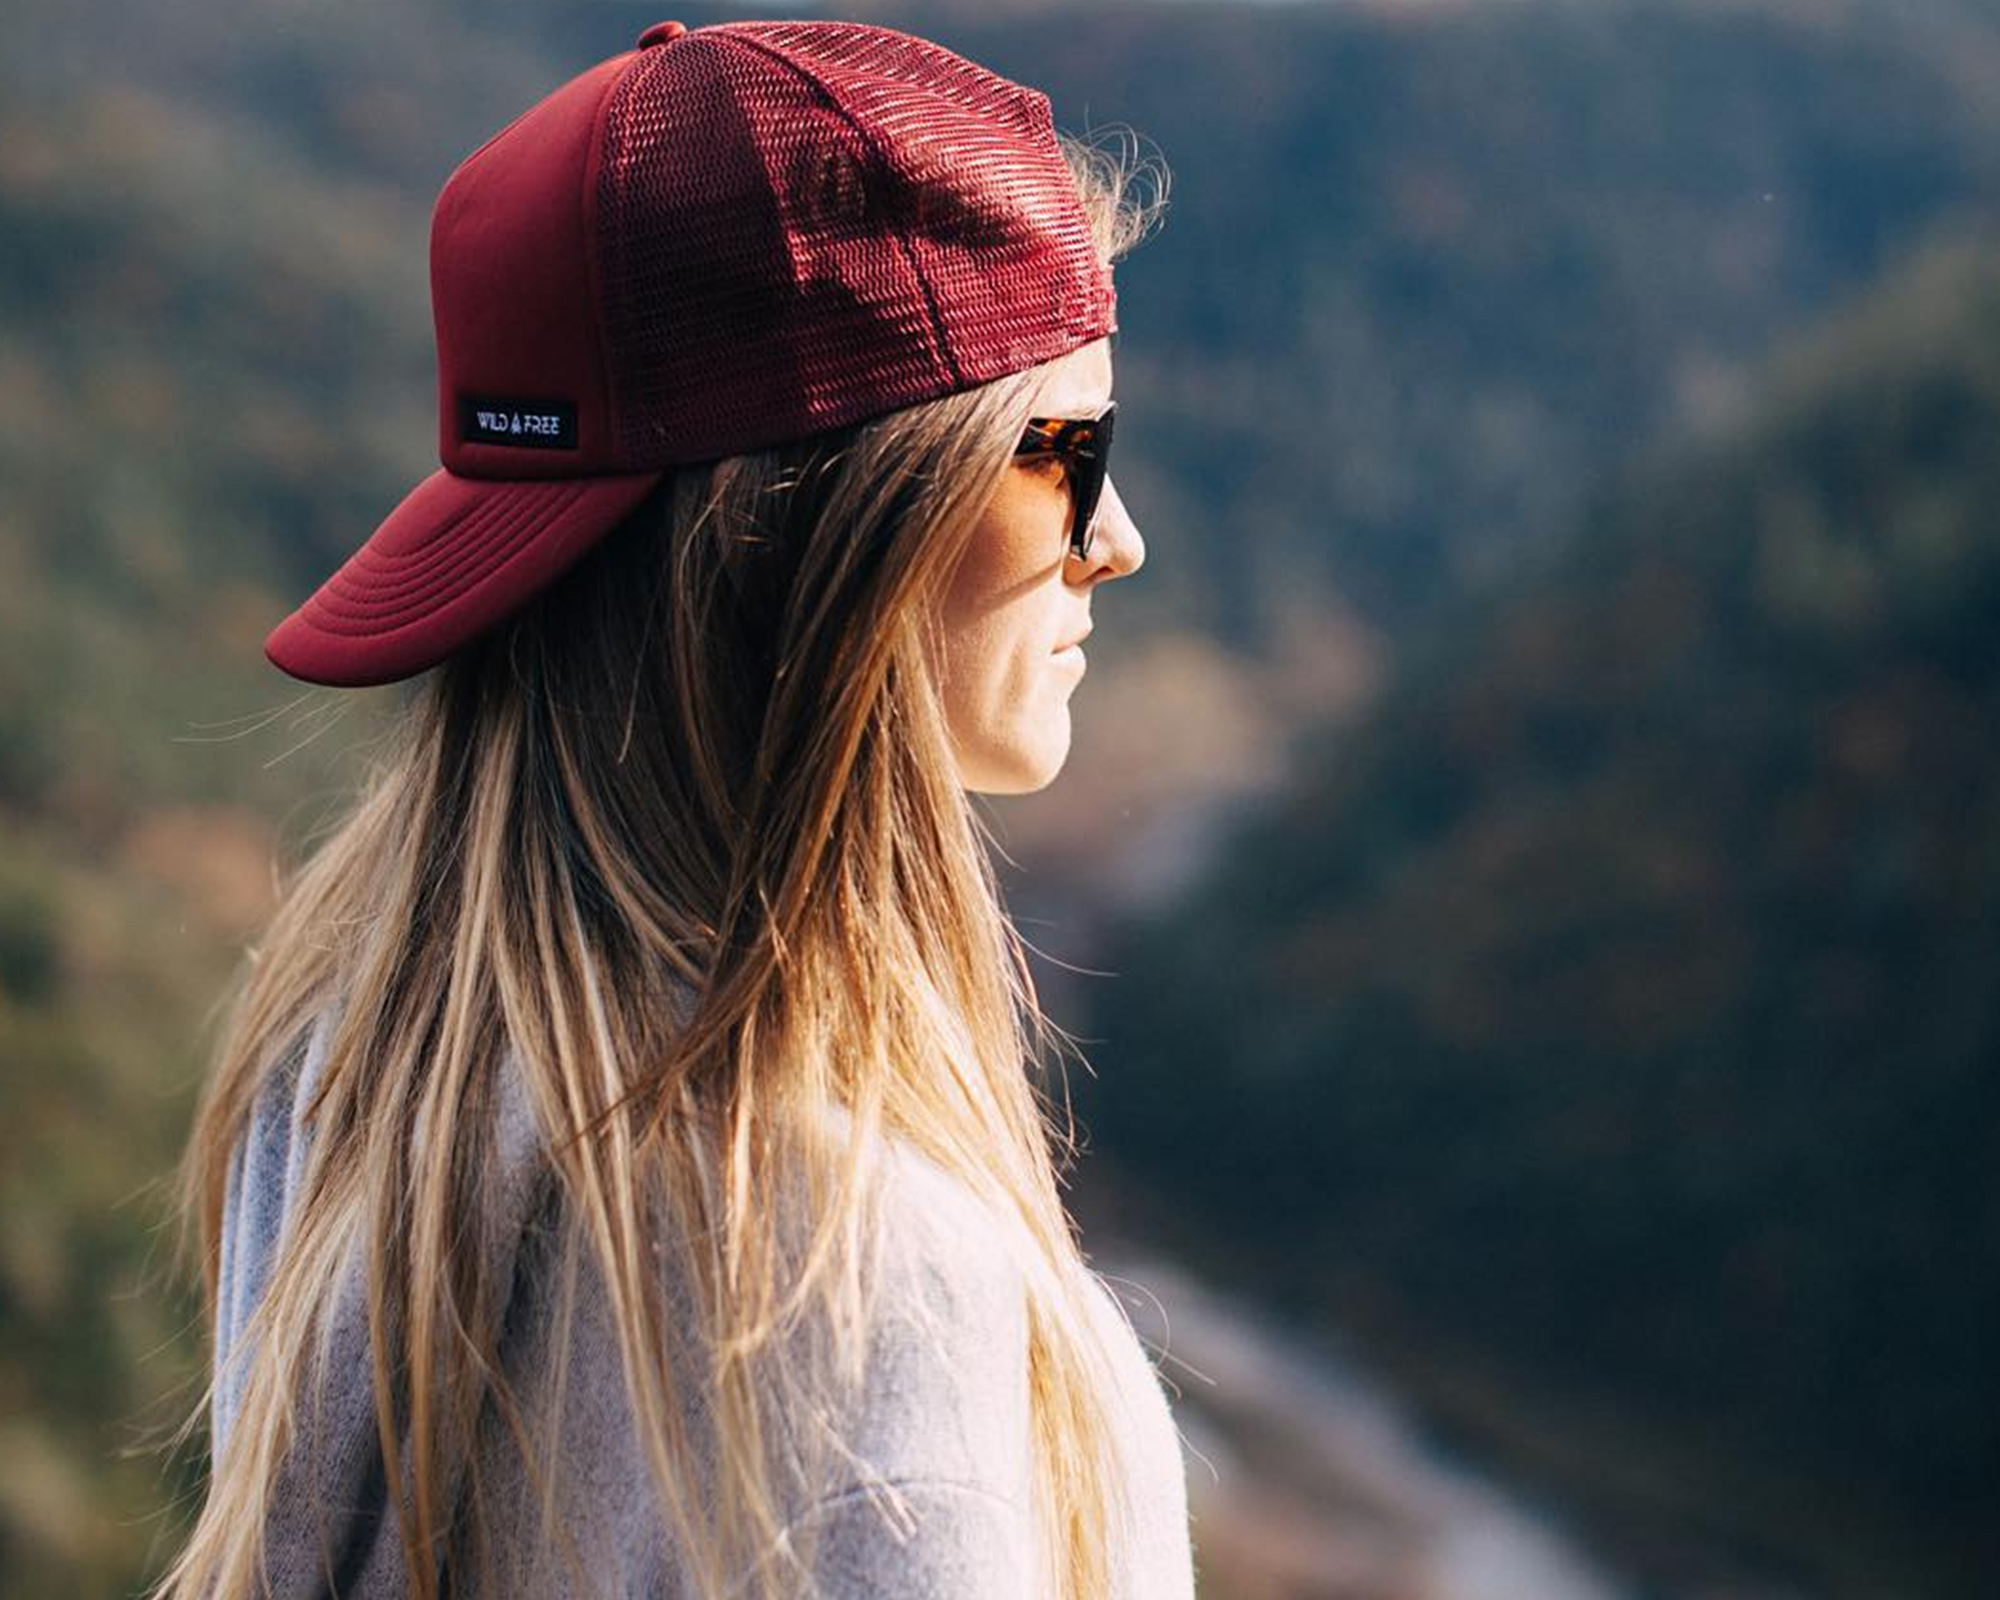 wild and free, mesh hats, trucker hats, eyewear, interchangeable sunglasses, fashion sunglasses, style sunglasses, california lifestyle, lifestyle brands, model, @wildandfreelife, instagram, lifestyle wear